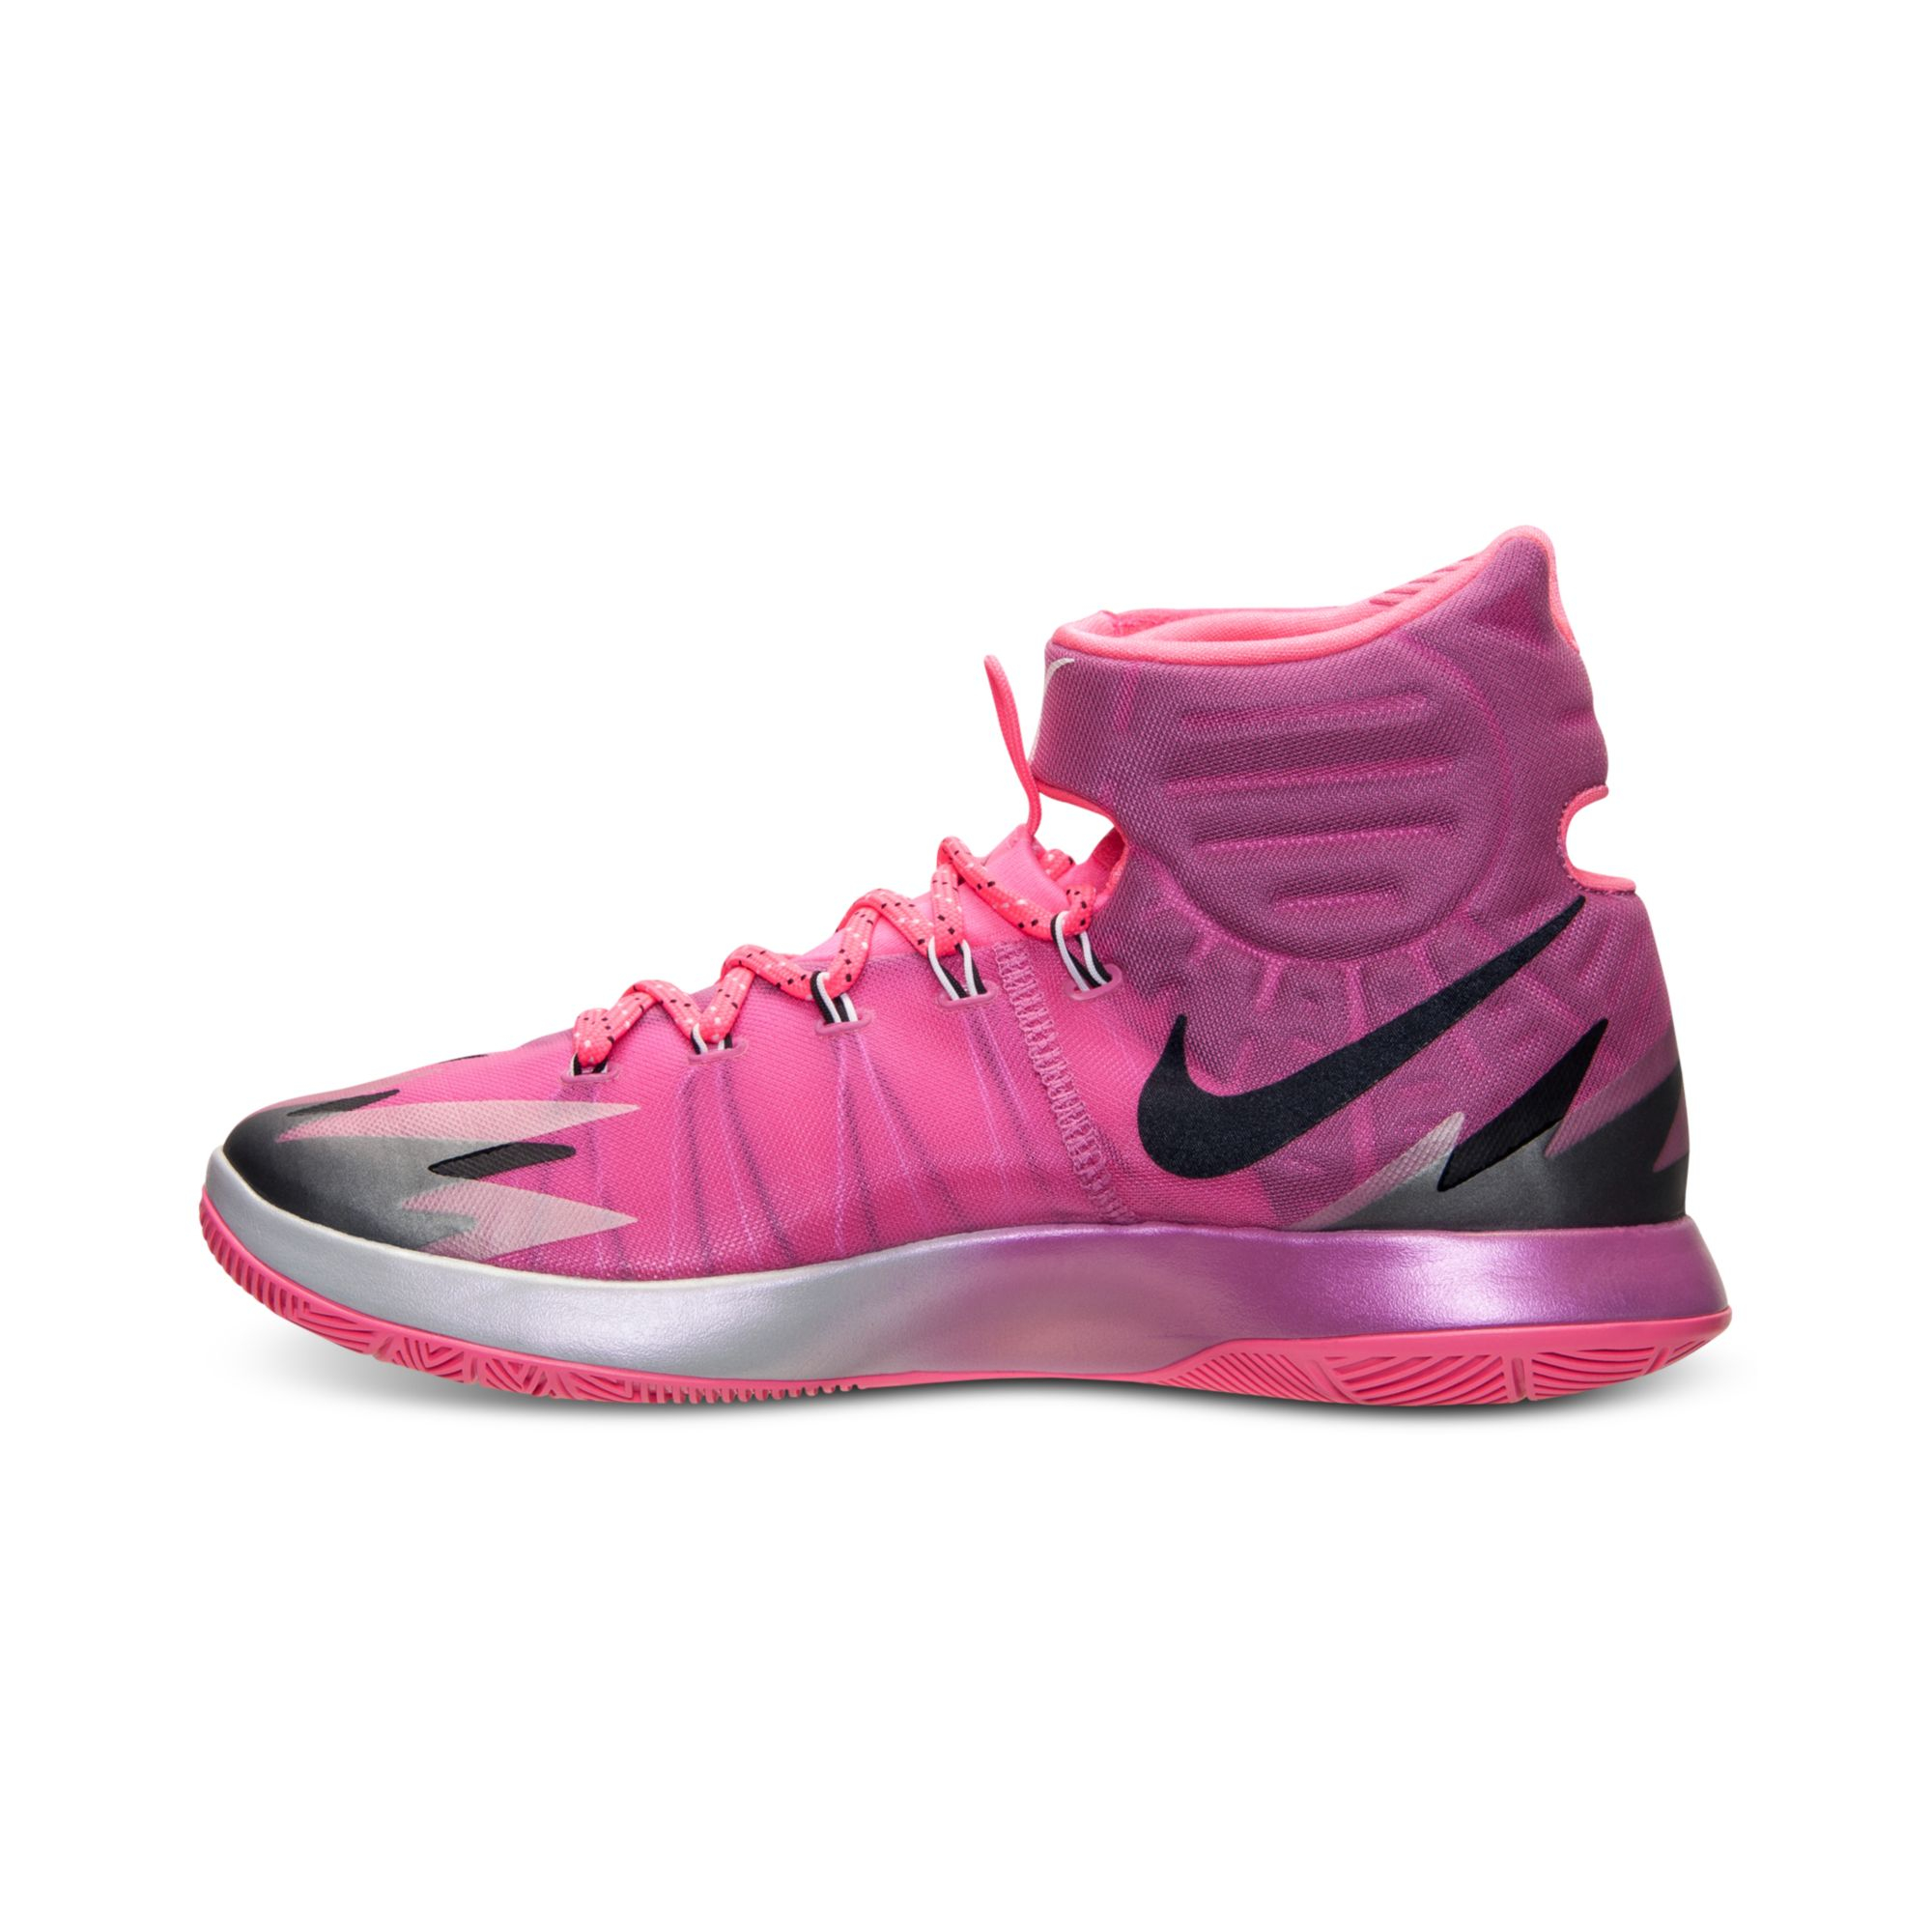 lyst nike mens zoom hyperrev basketball sneakers from finish line in pink for men. Black Bedroom Furniture Sets. Home Design Ideas